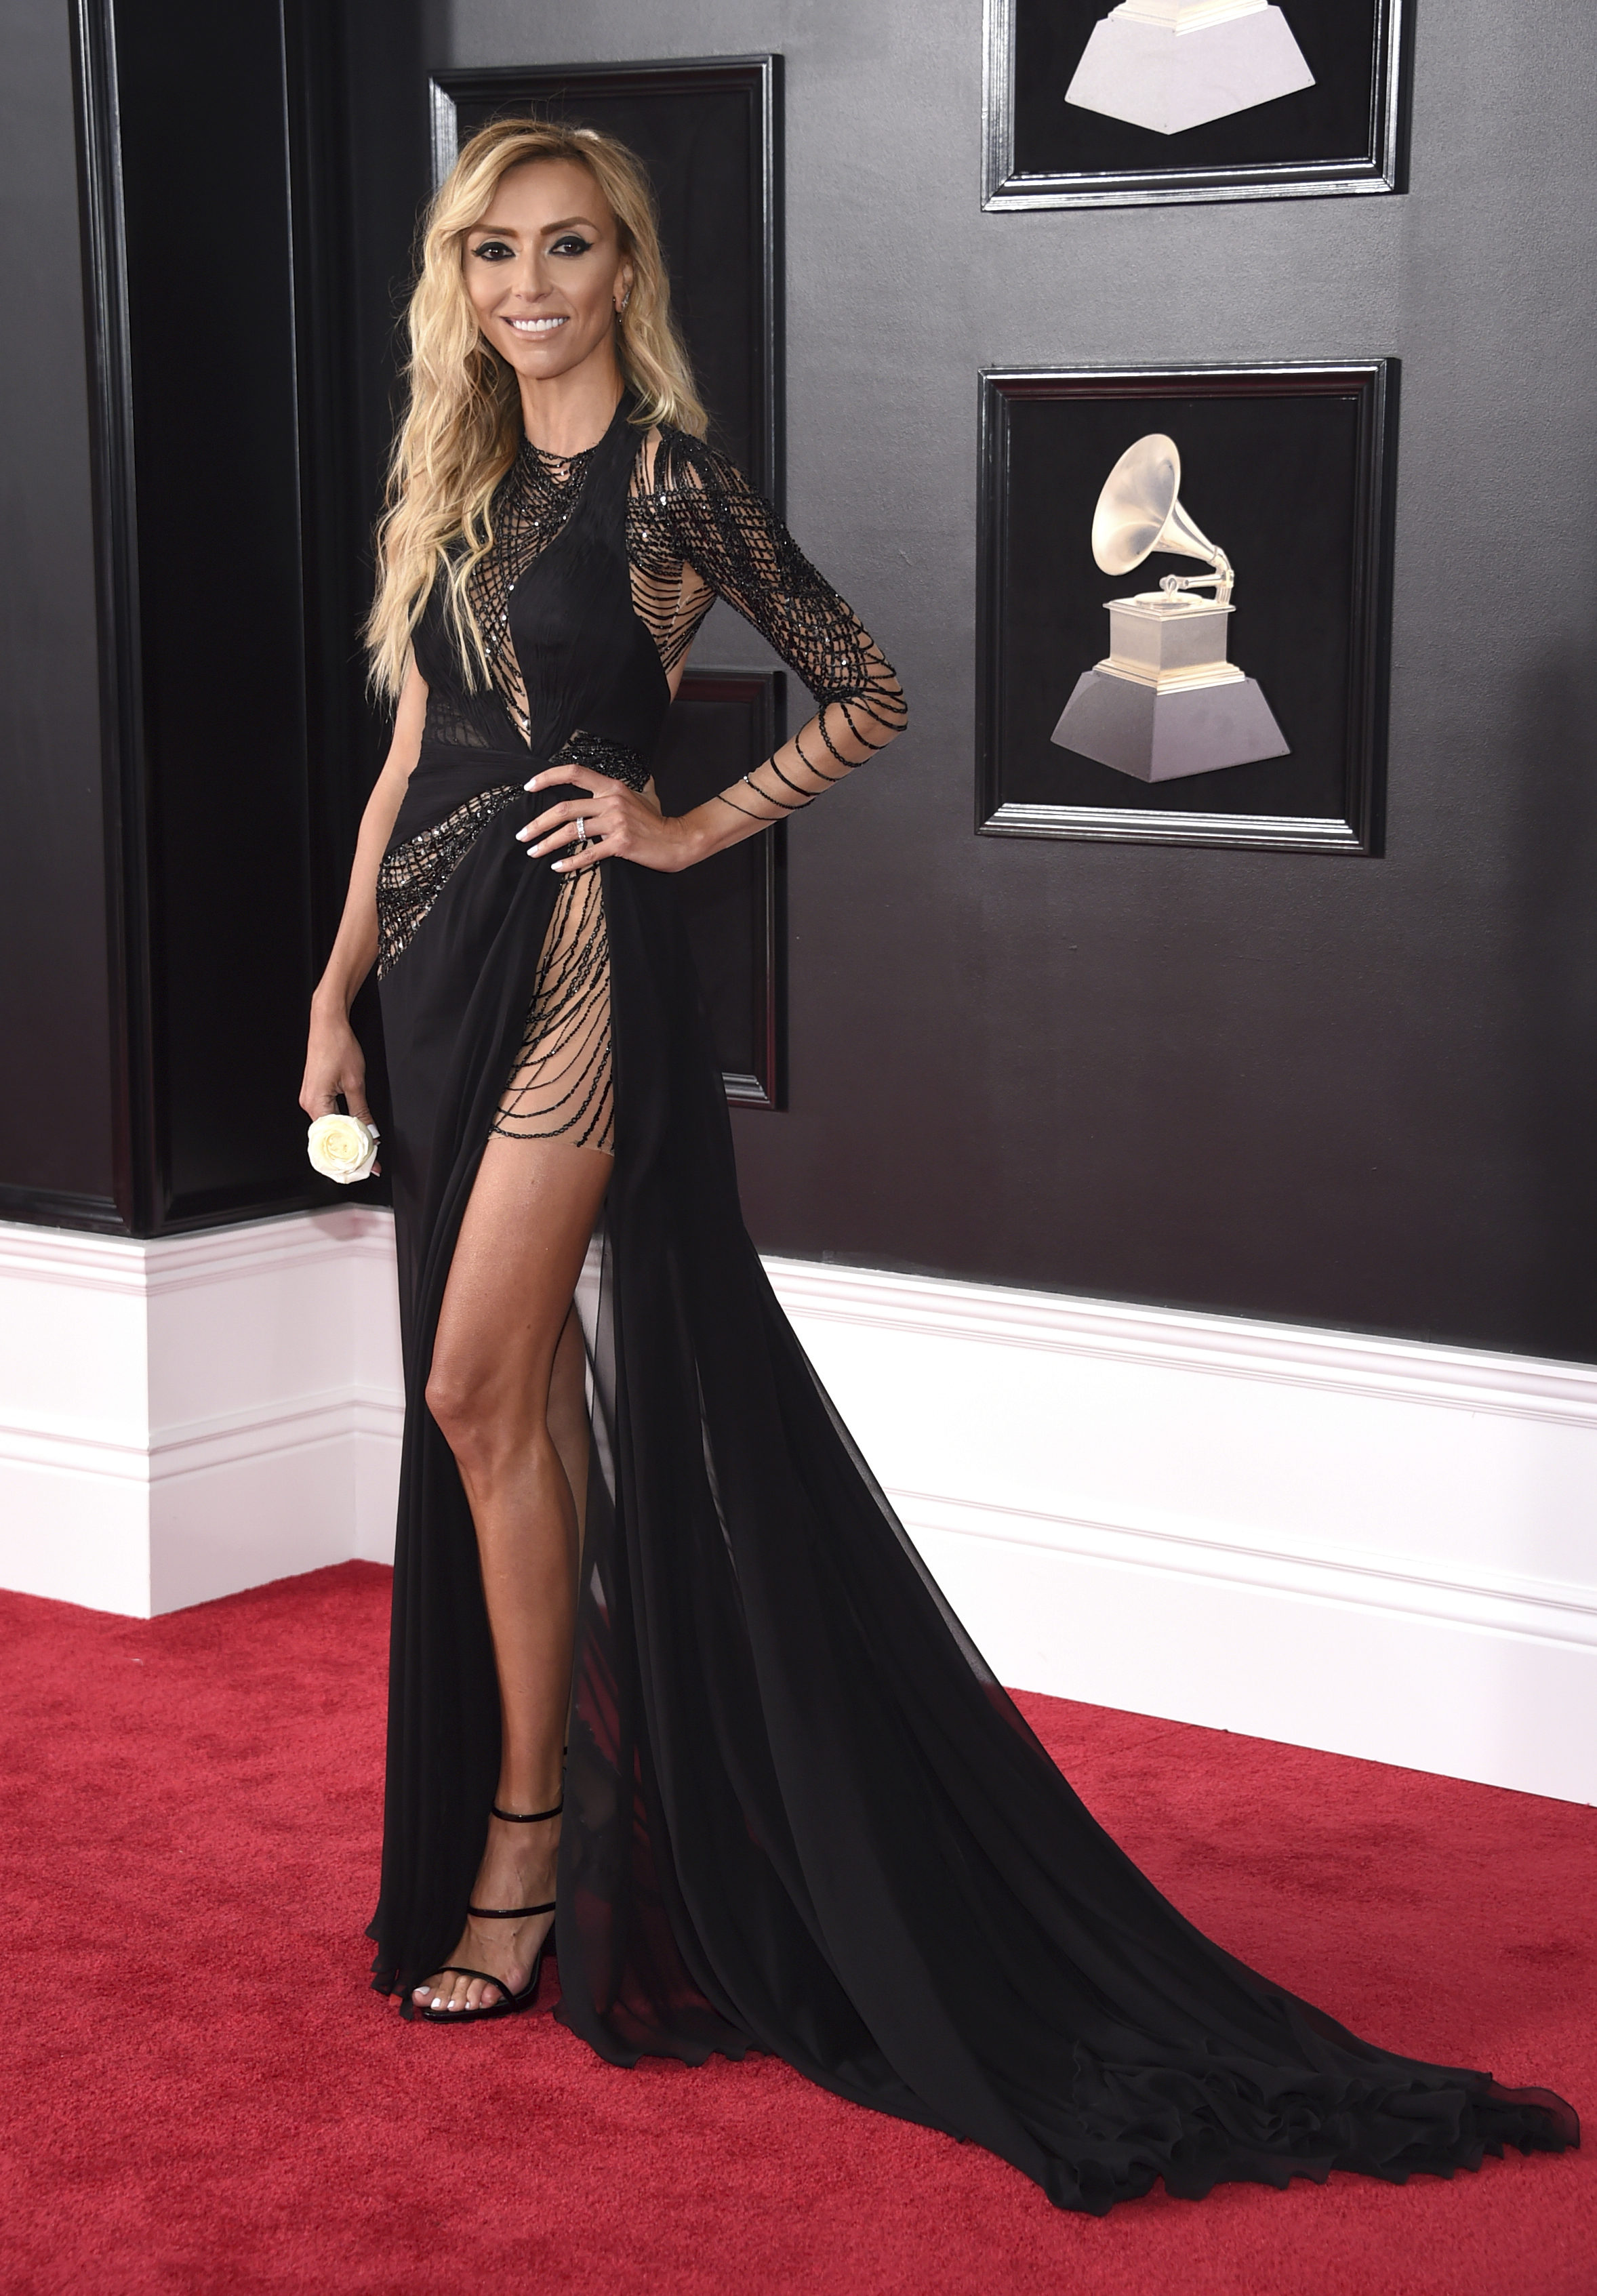 <div class='meta'><div class='origin-logo' data-origin='AP'></div><span class='caption-text' data-credit='Evan Agostini/Invision/AP'>Giuliana Rancic arrives at the 60th annual Grammy Awards at Madison Square Garden on Sunday, Jan. 28, 2018, in New York.</span></div>